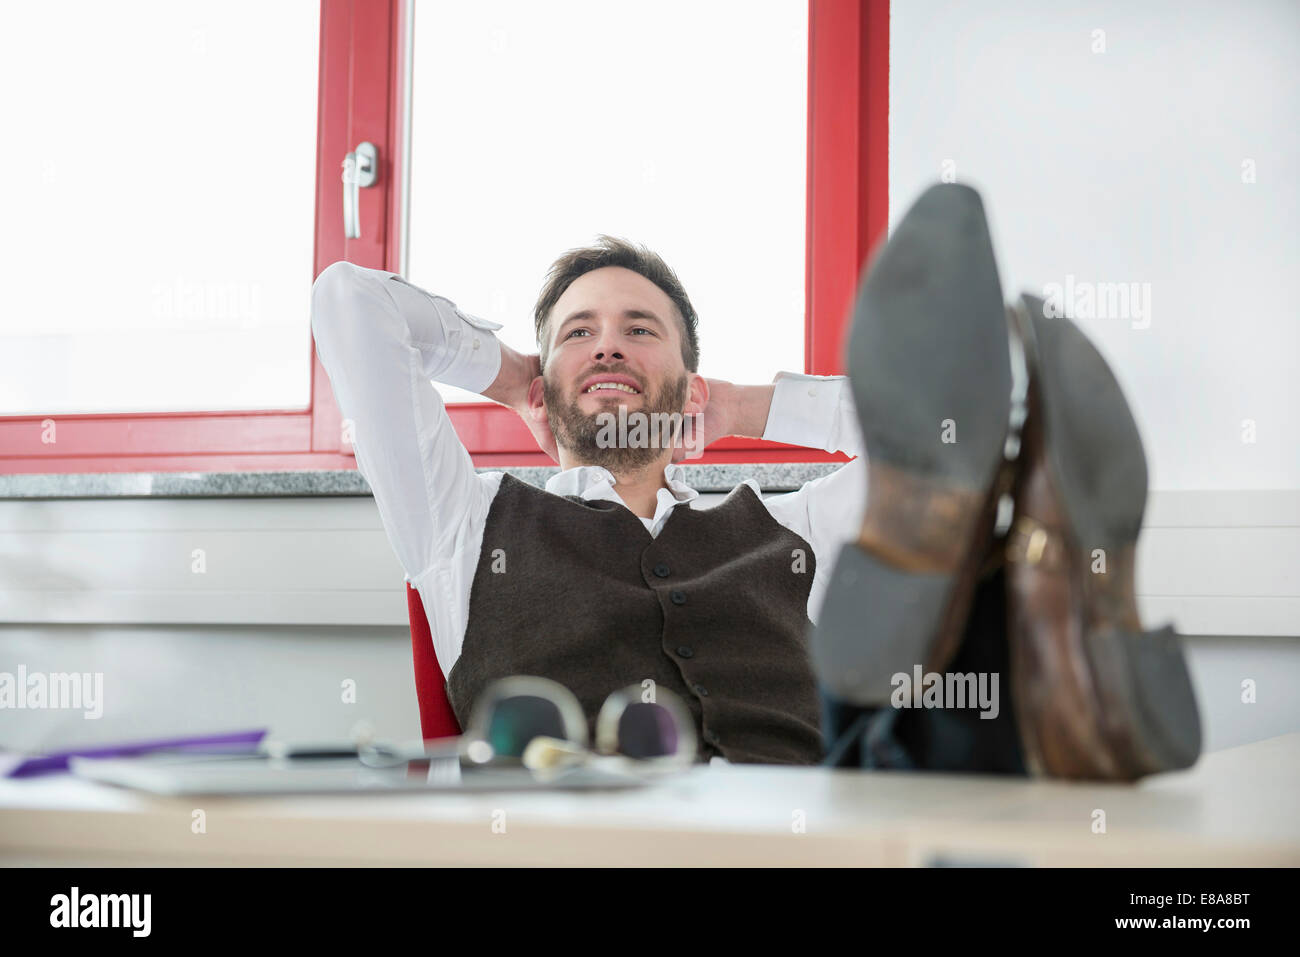 Young man office desk relaxing feet up lazy - Stock Image